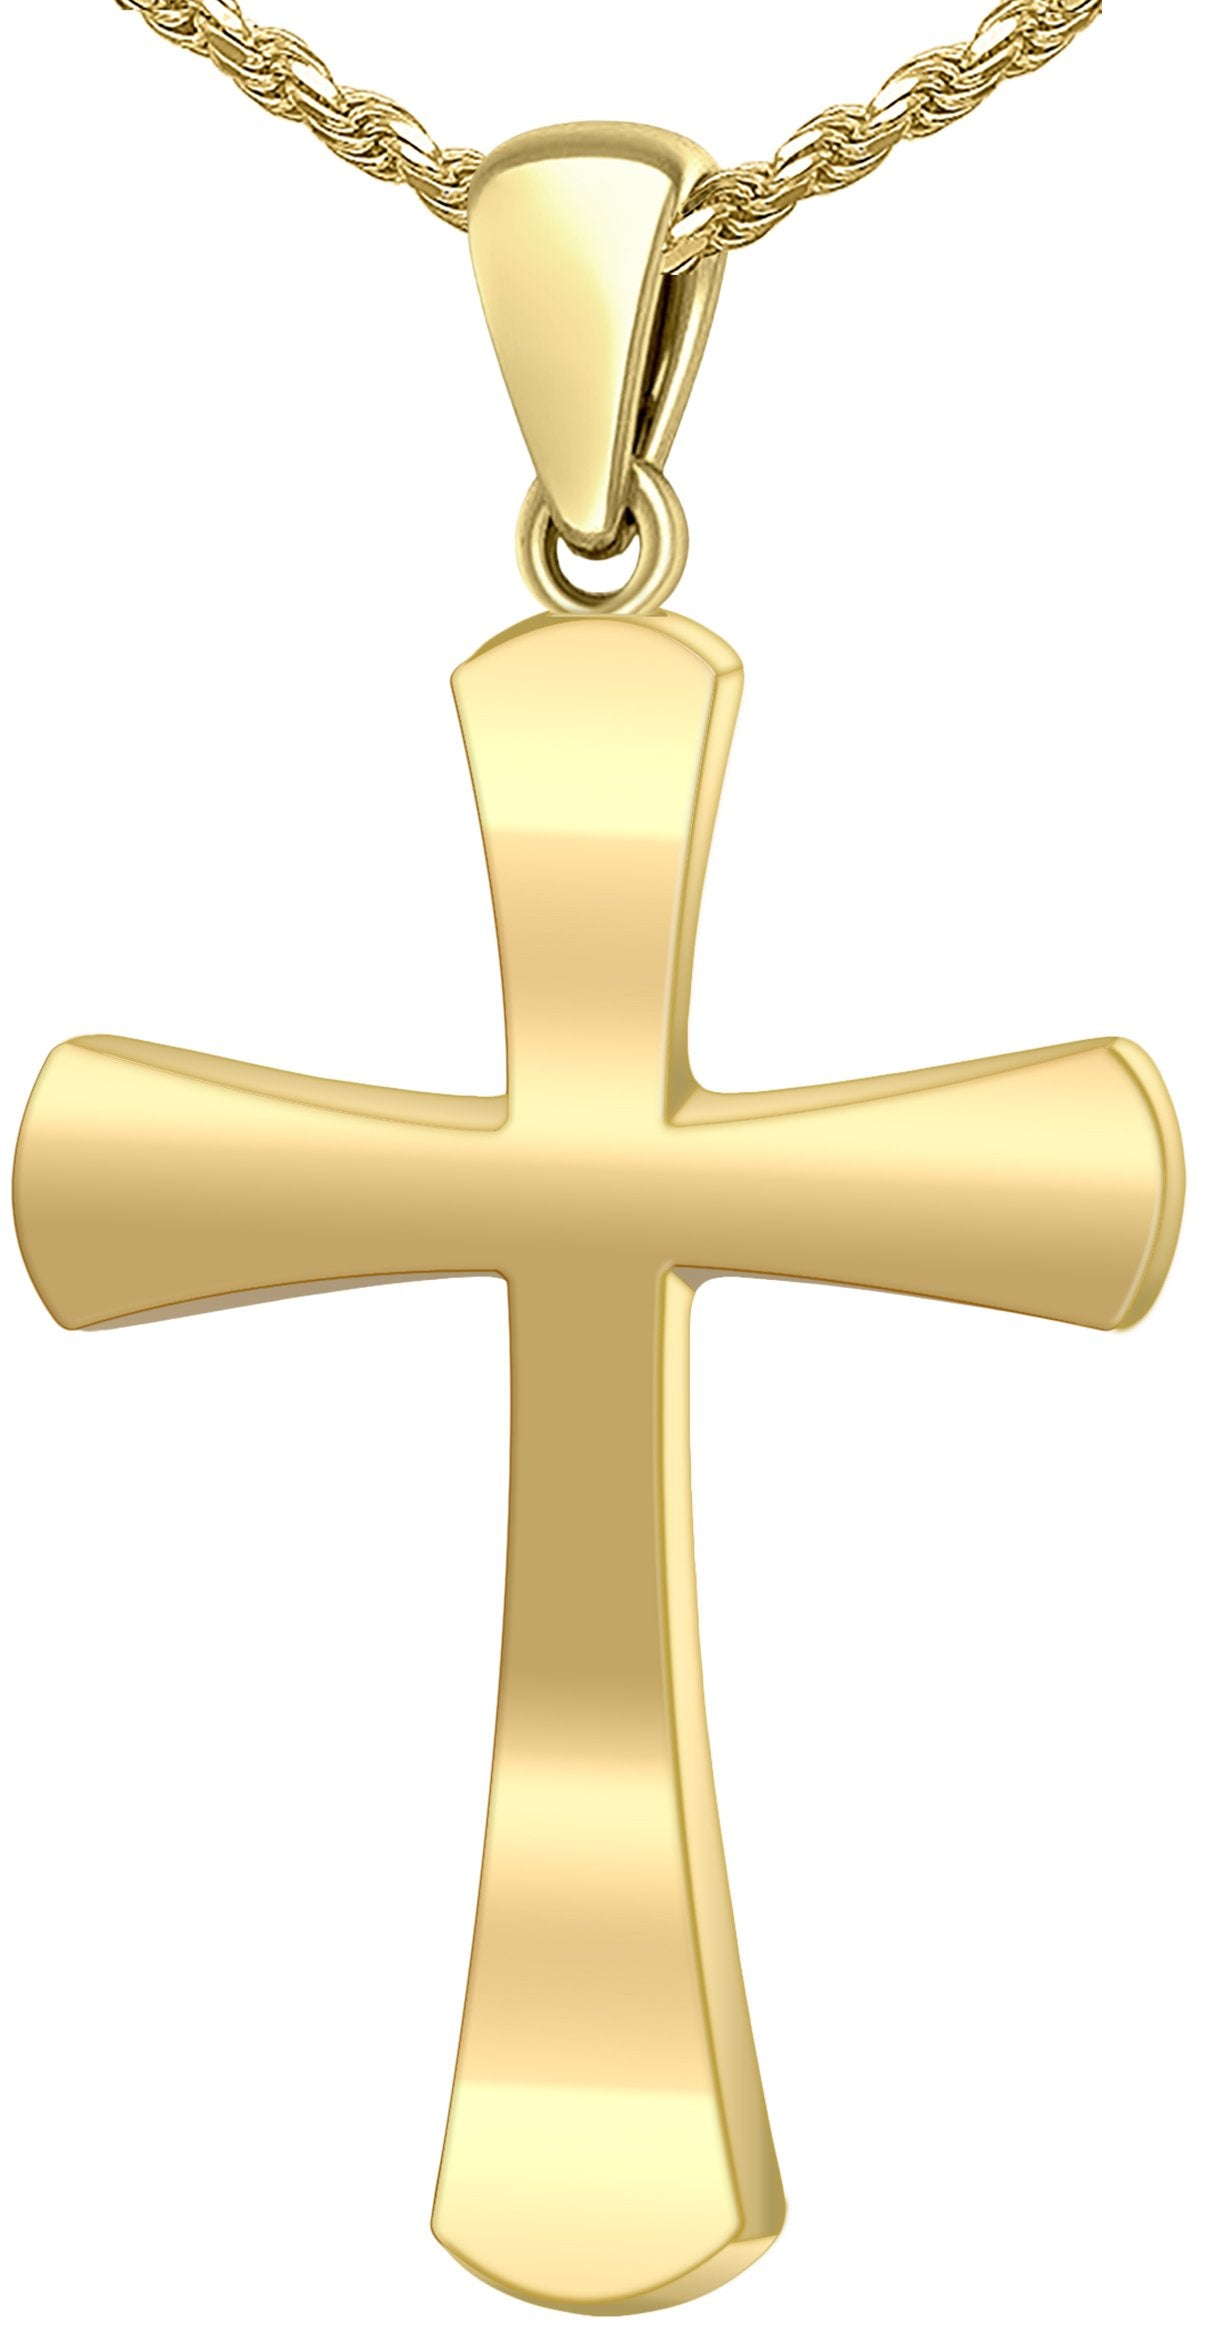 Christian Cross Necklace - Gold Pendant In Round For Men